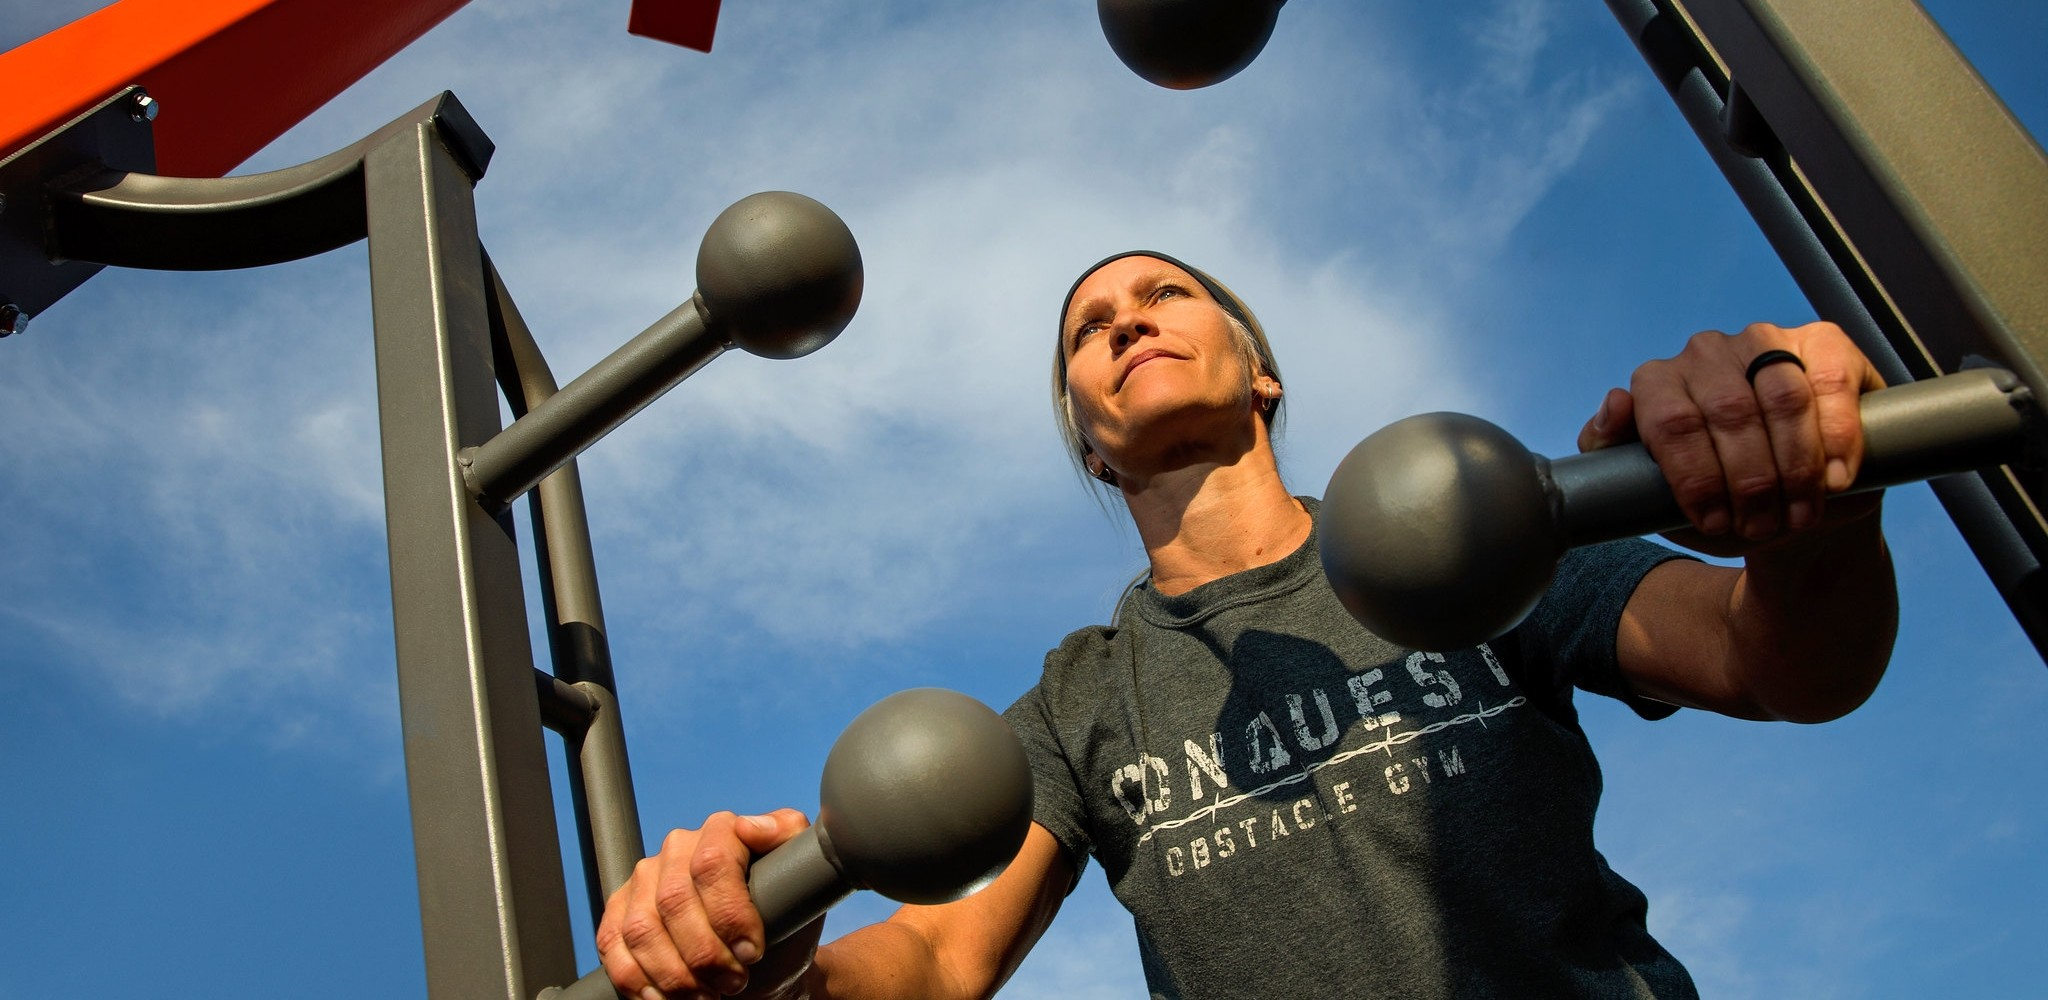 THRIVE 450 Outdoor Workout Equipment from GameTime